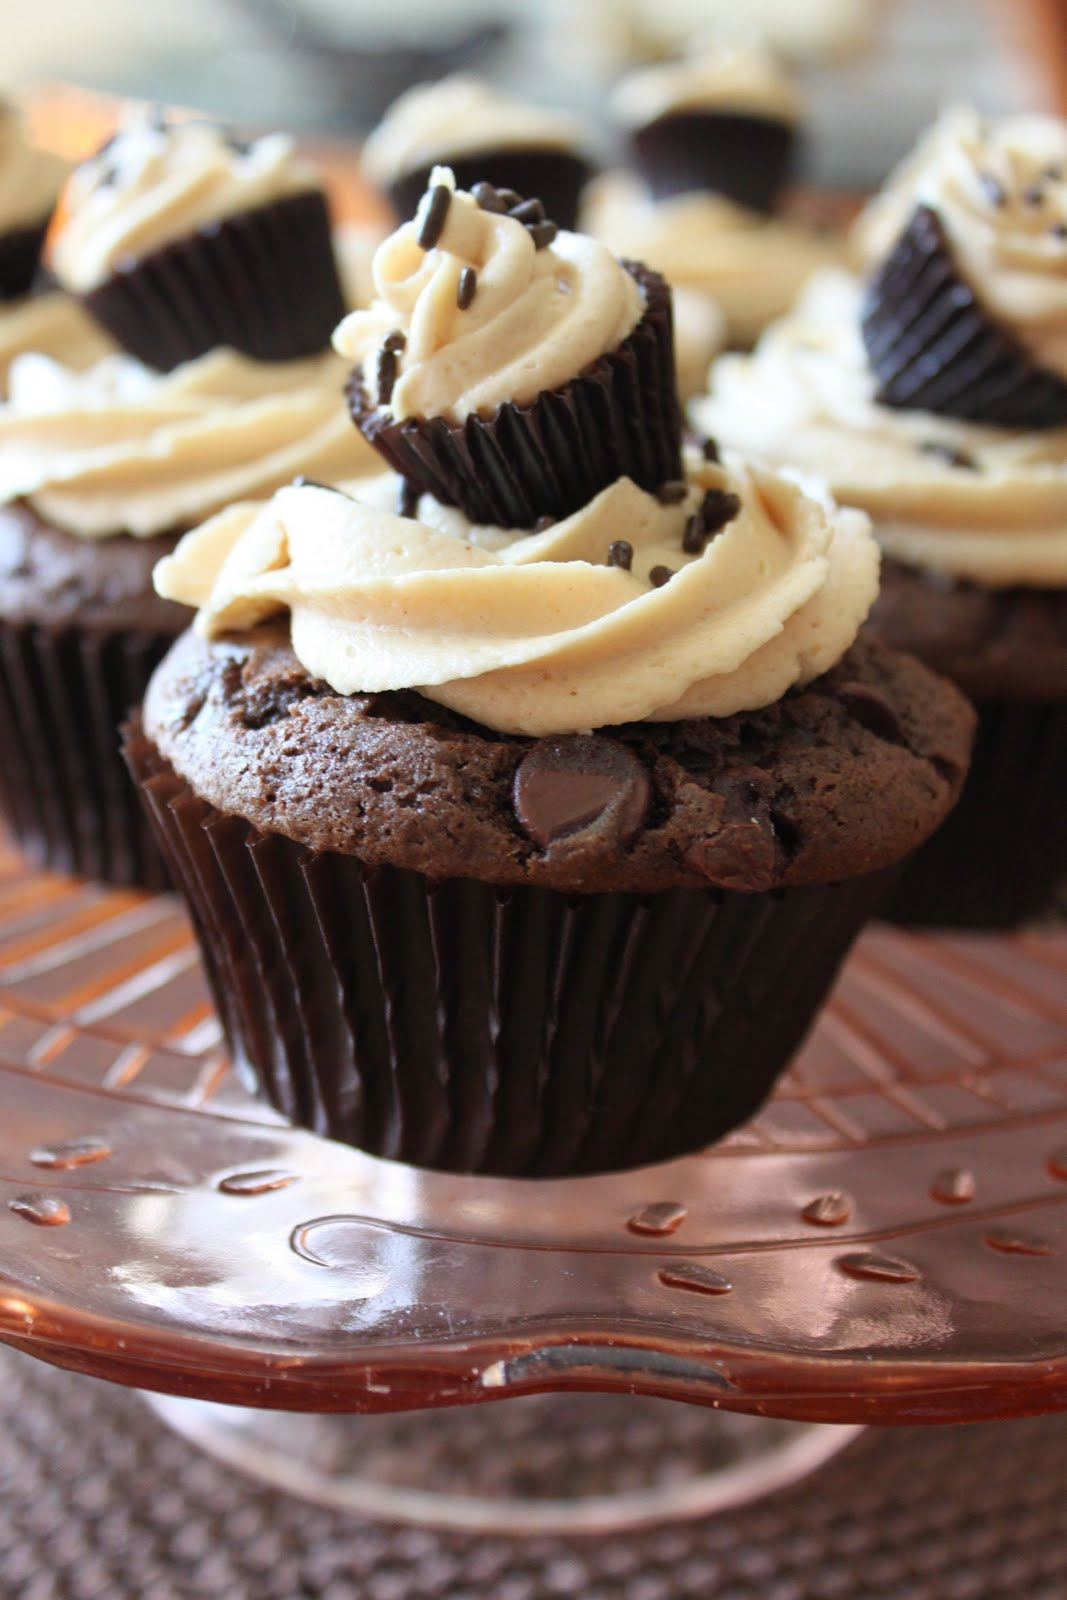 Baked Perfection: Chocolate Cupcakes with Peanut Butter Frosting